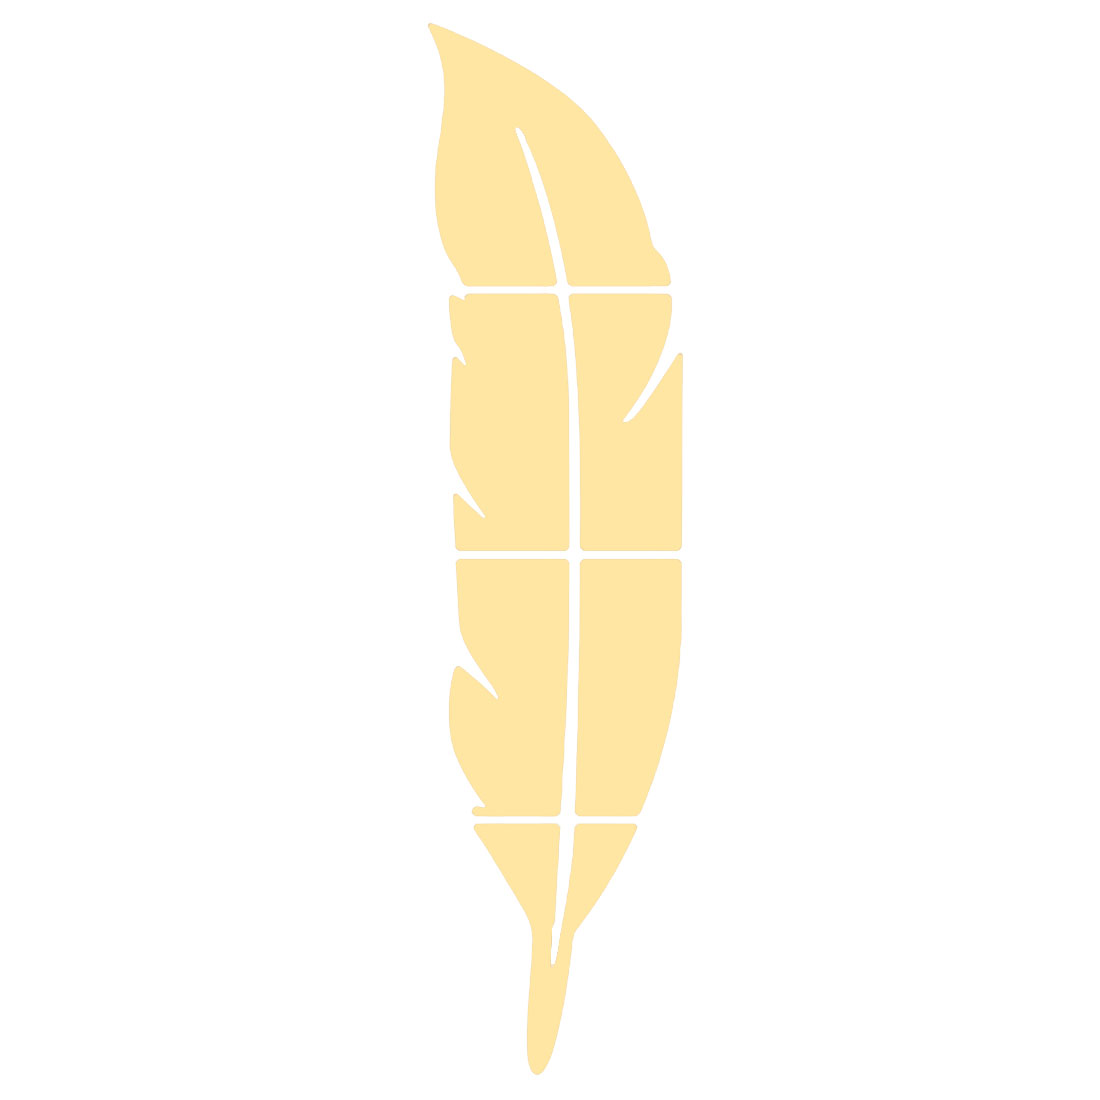 Room Acrylic Feather Shaped Self-adhesive Mural Mirror Wall Sticker Gold Tone